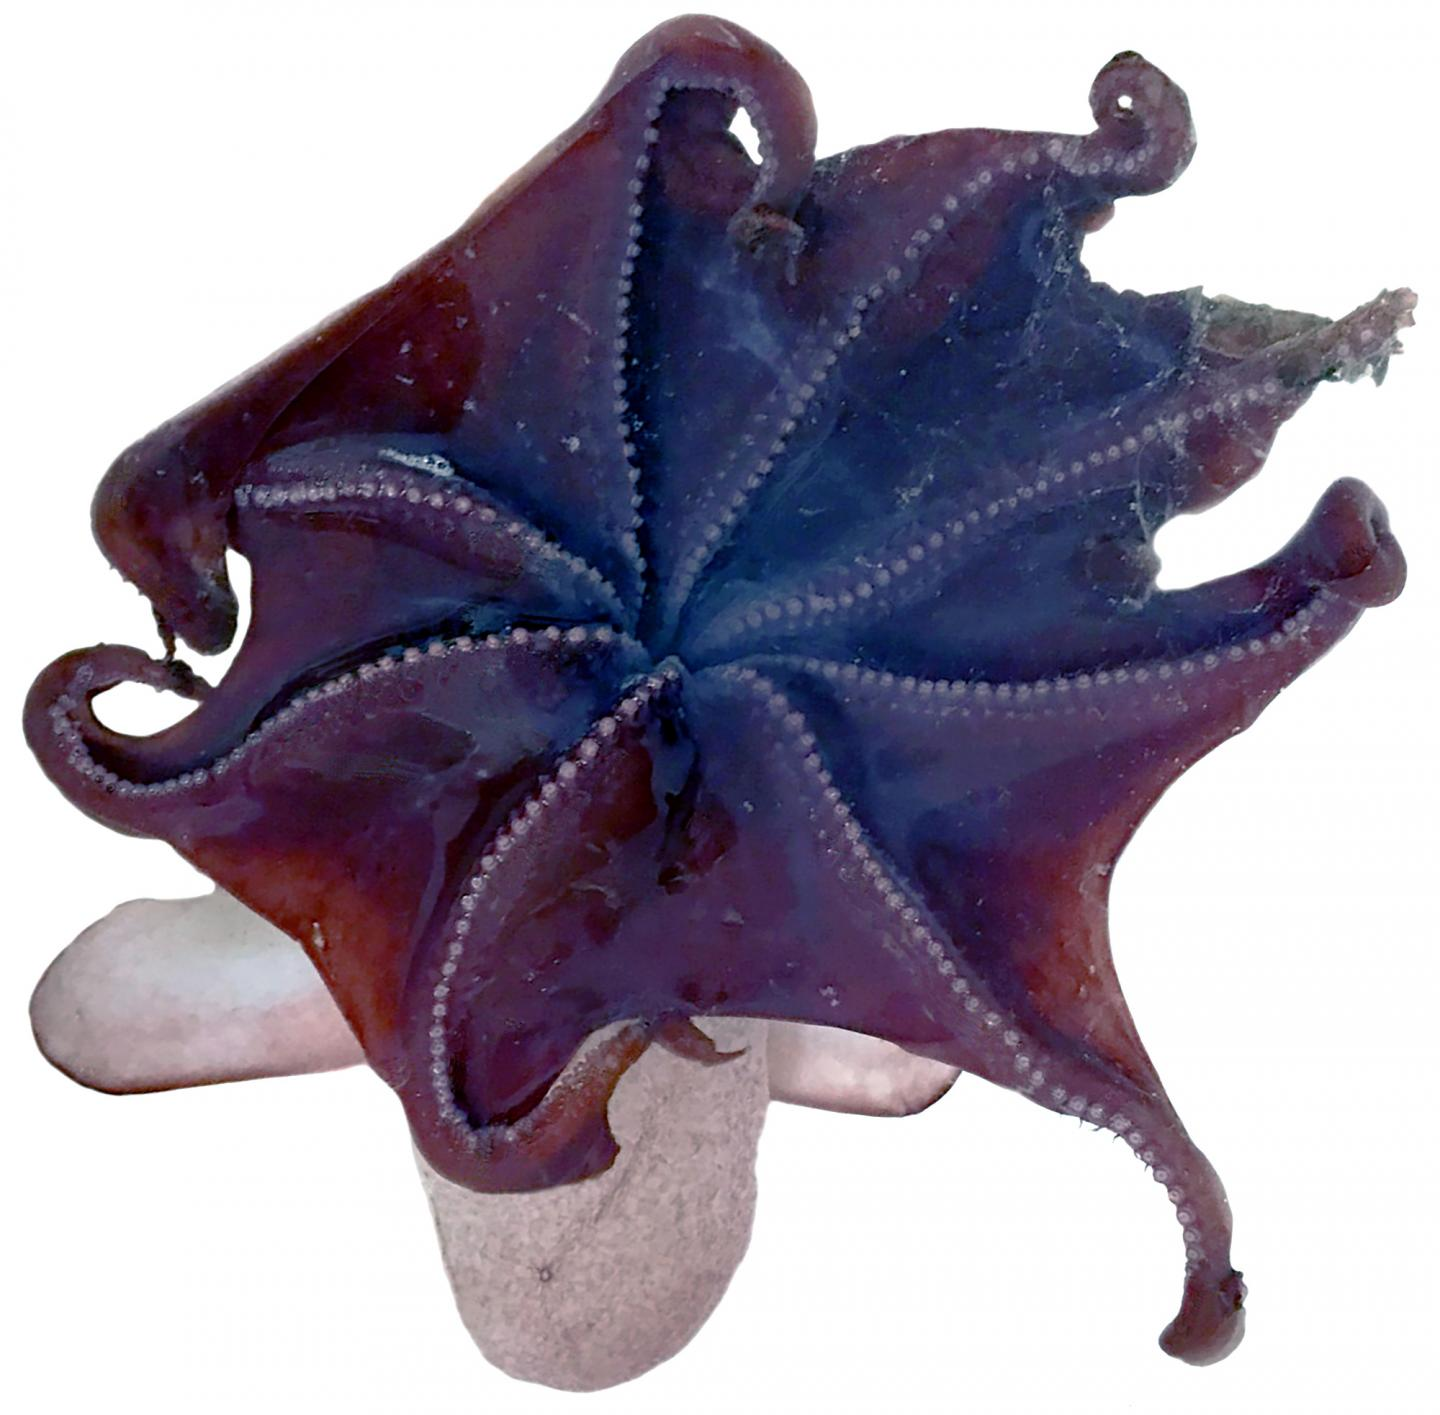 The bell-shaped umbrella of the Emperor dumbo (Grimpoteuthis imperator)